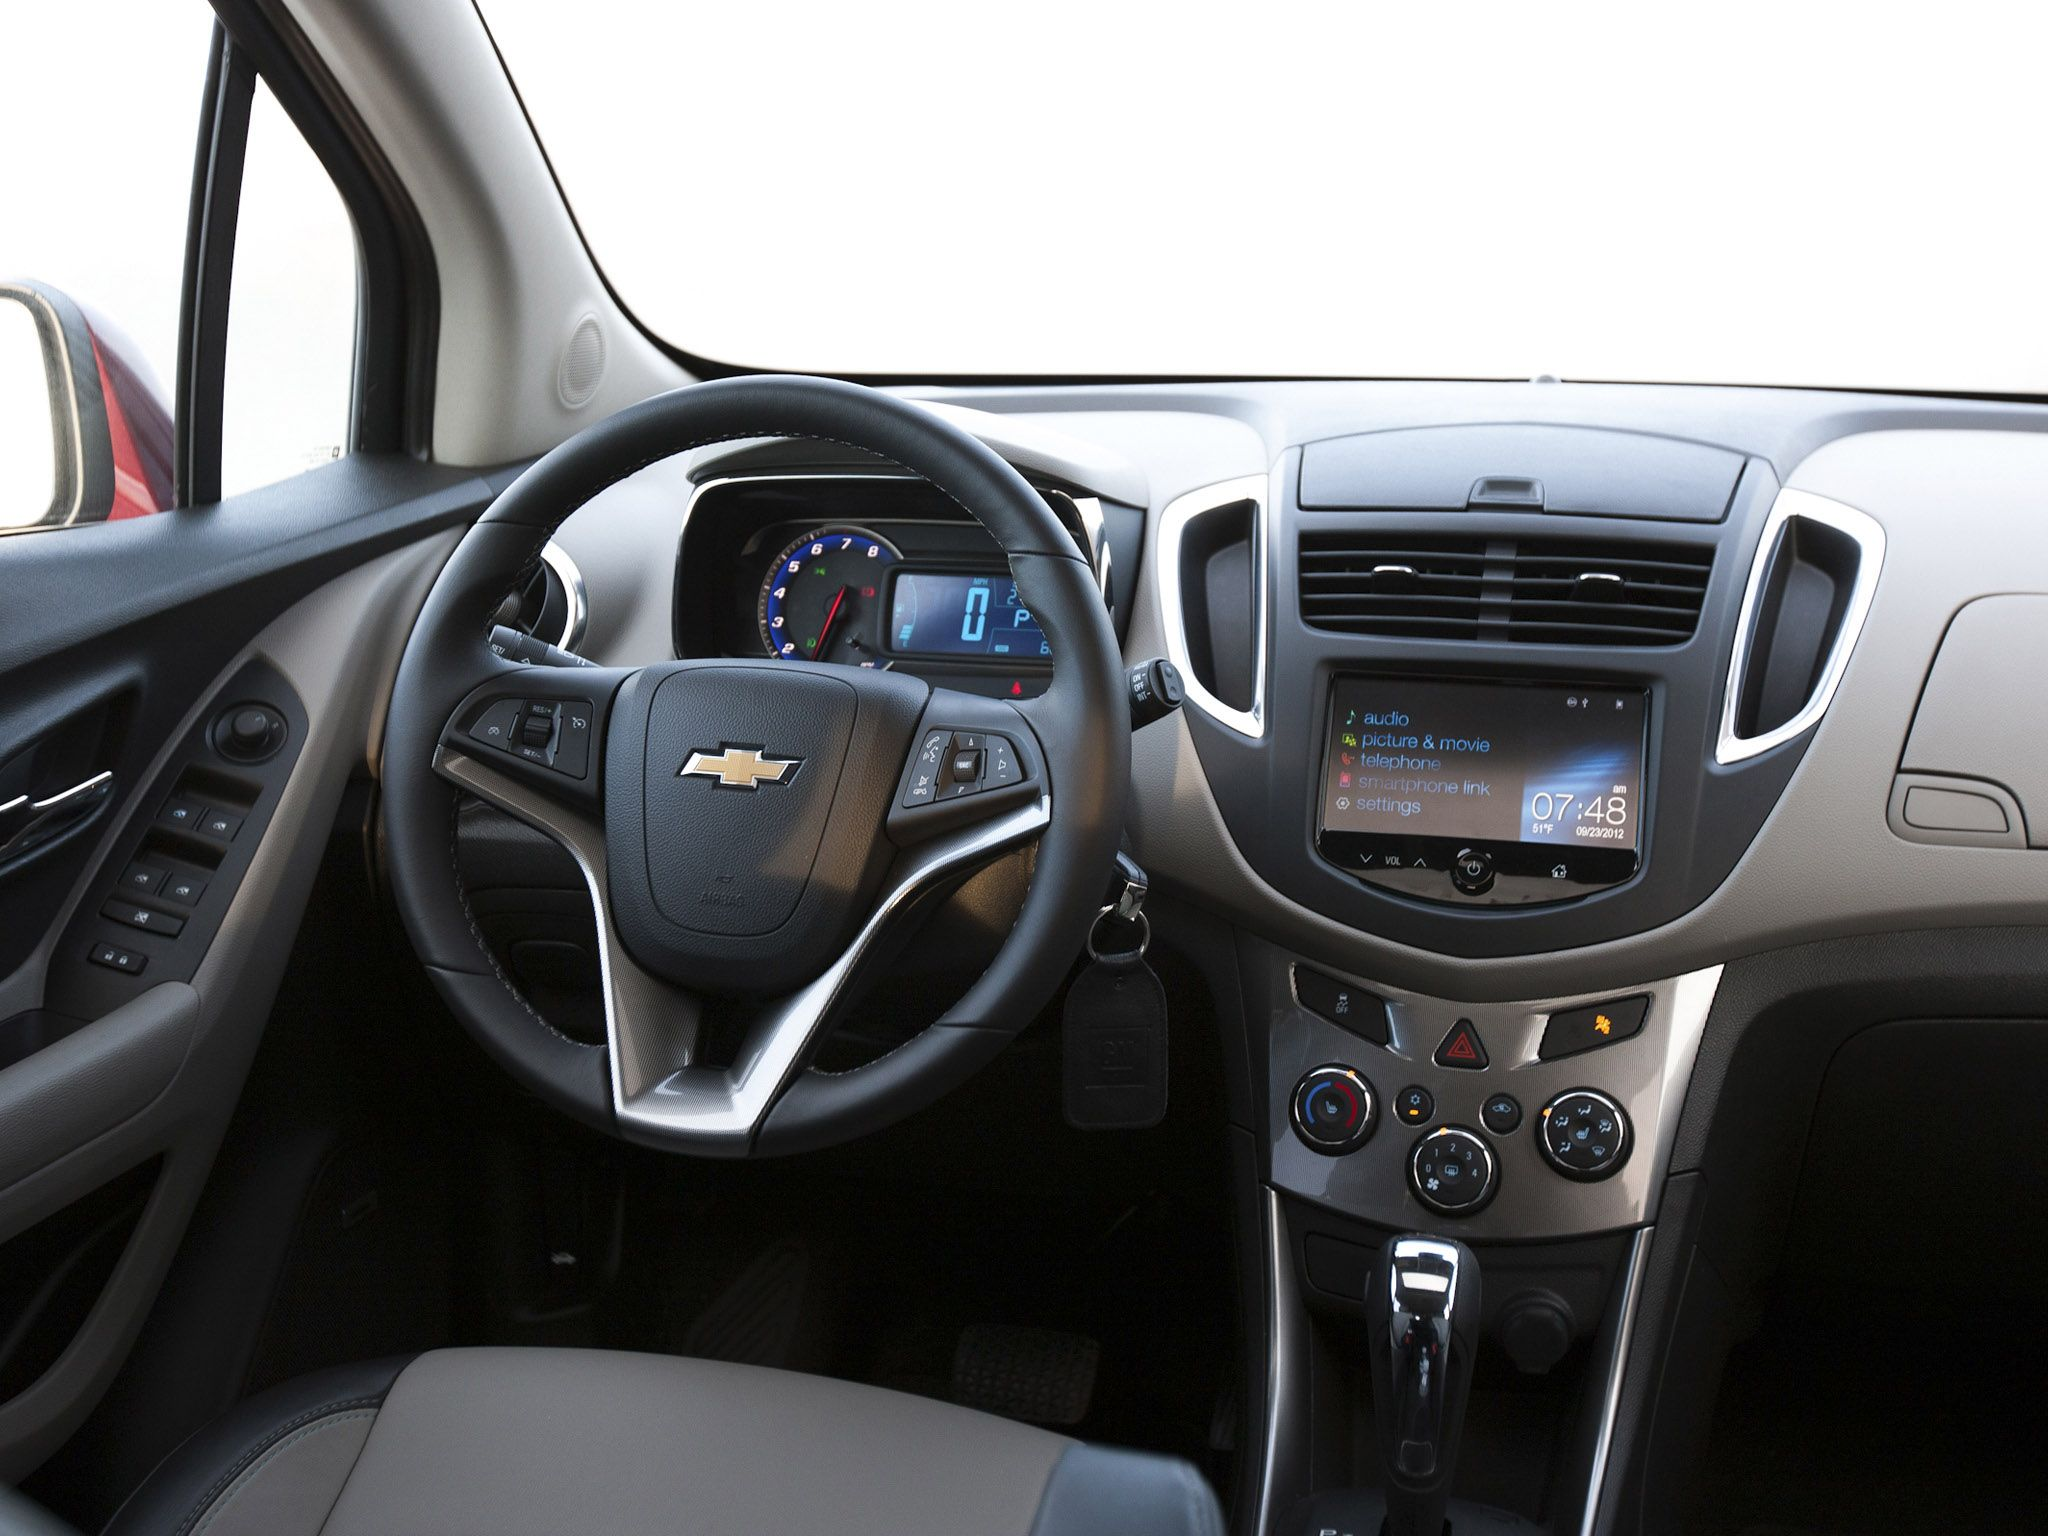 2019 Chevrolet Captiva Review Interior Facelift Release Date